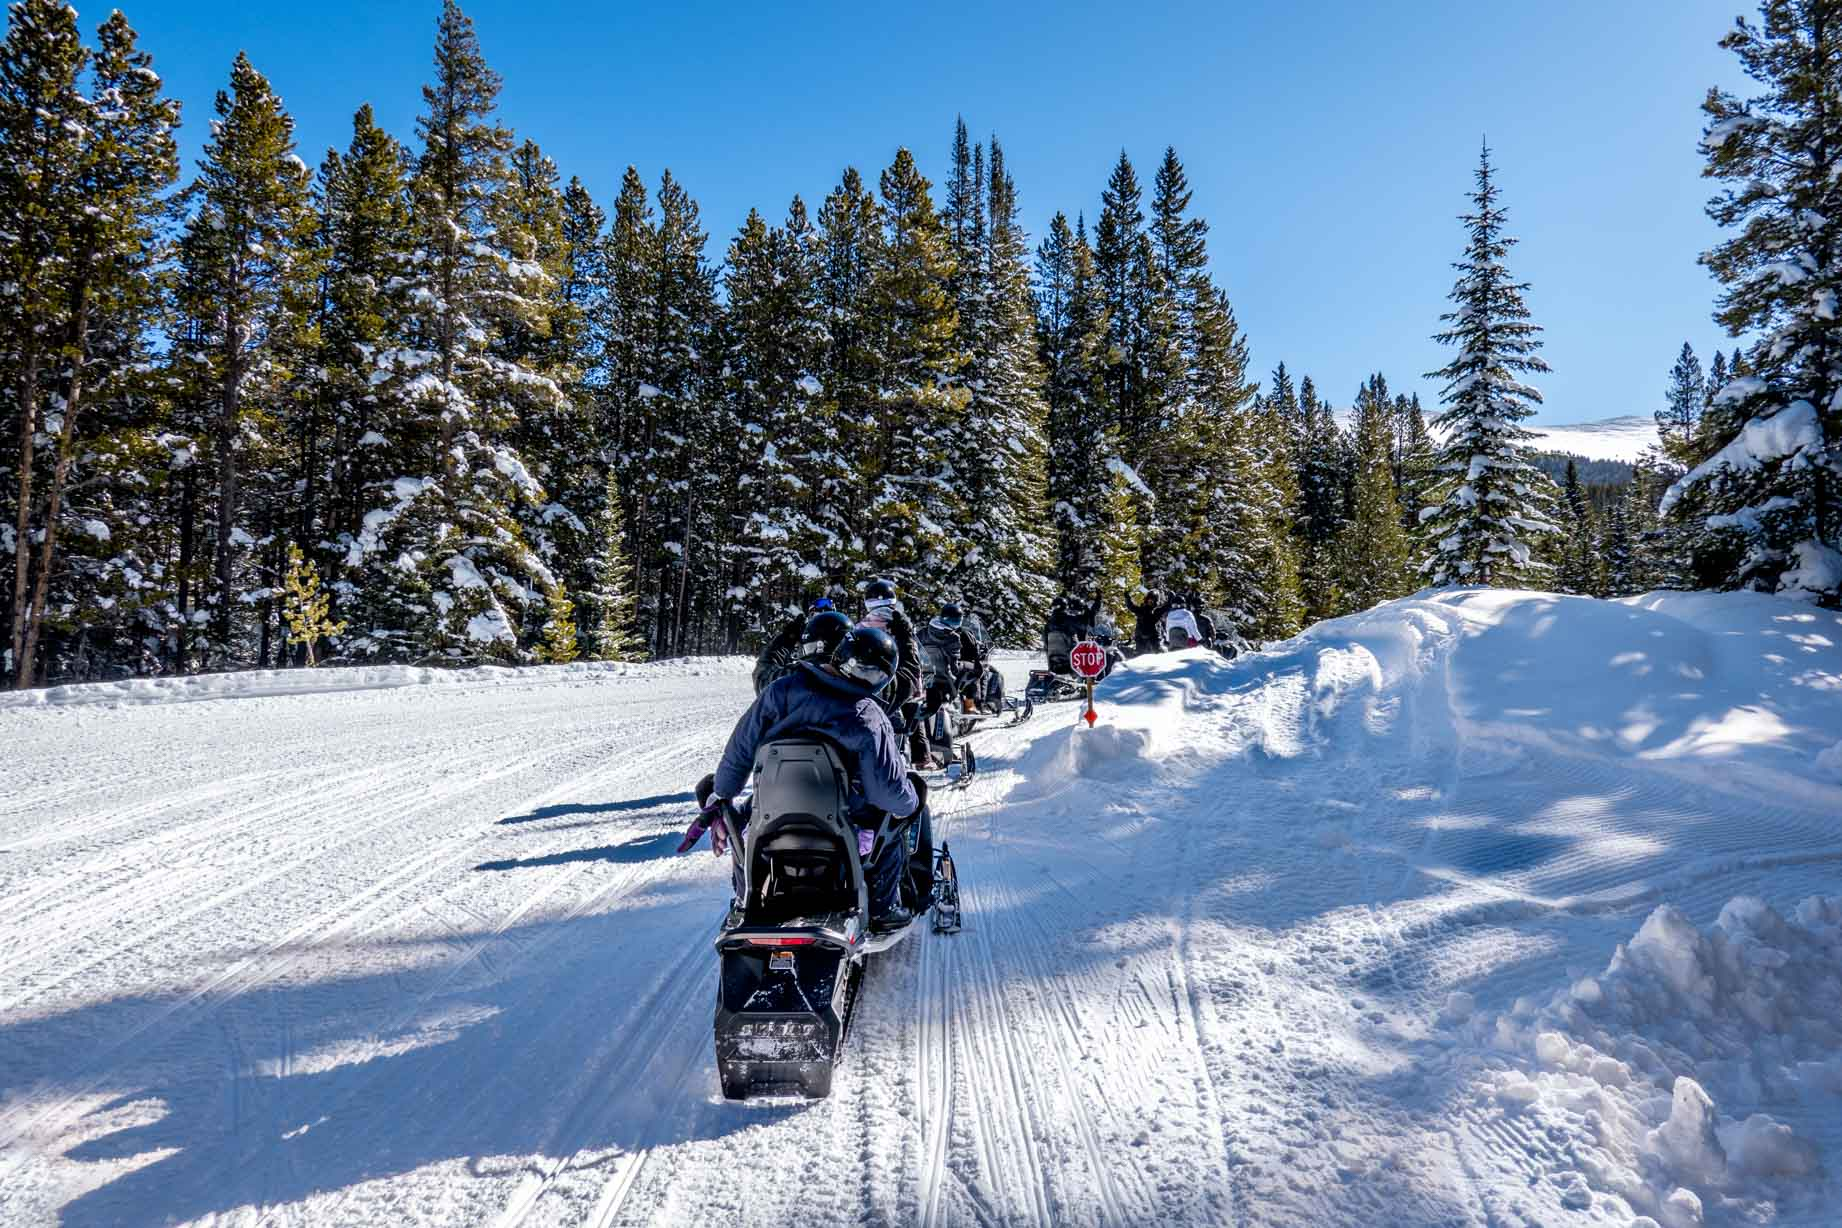 Group going snowmobiling surrounded by snow-covered trees